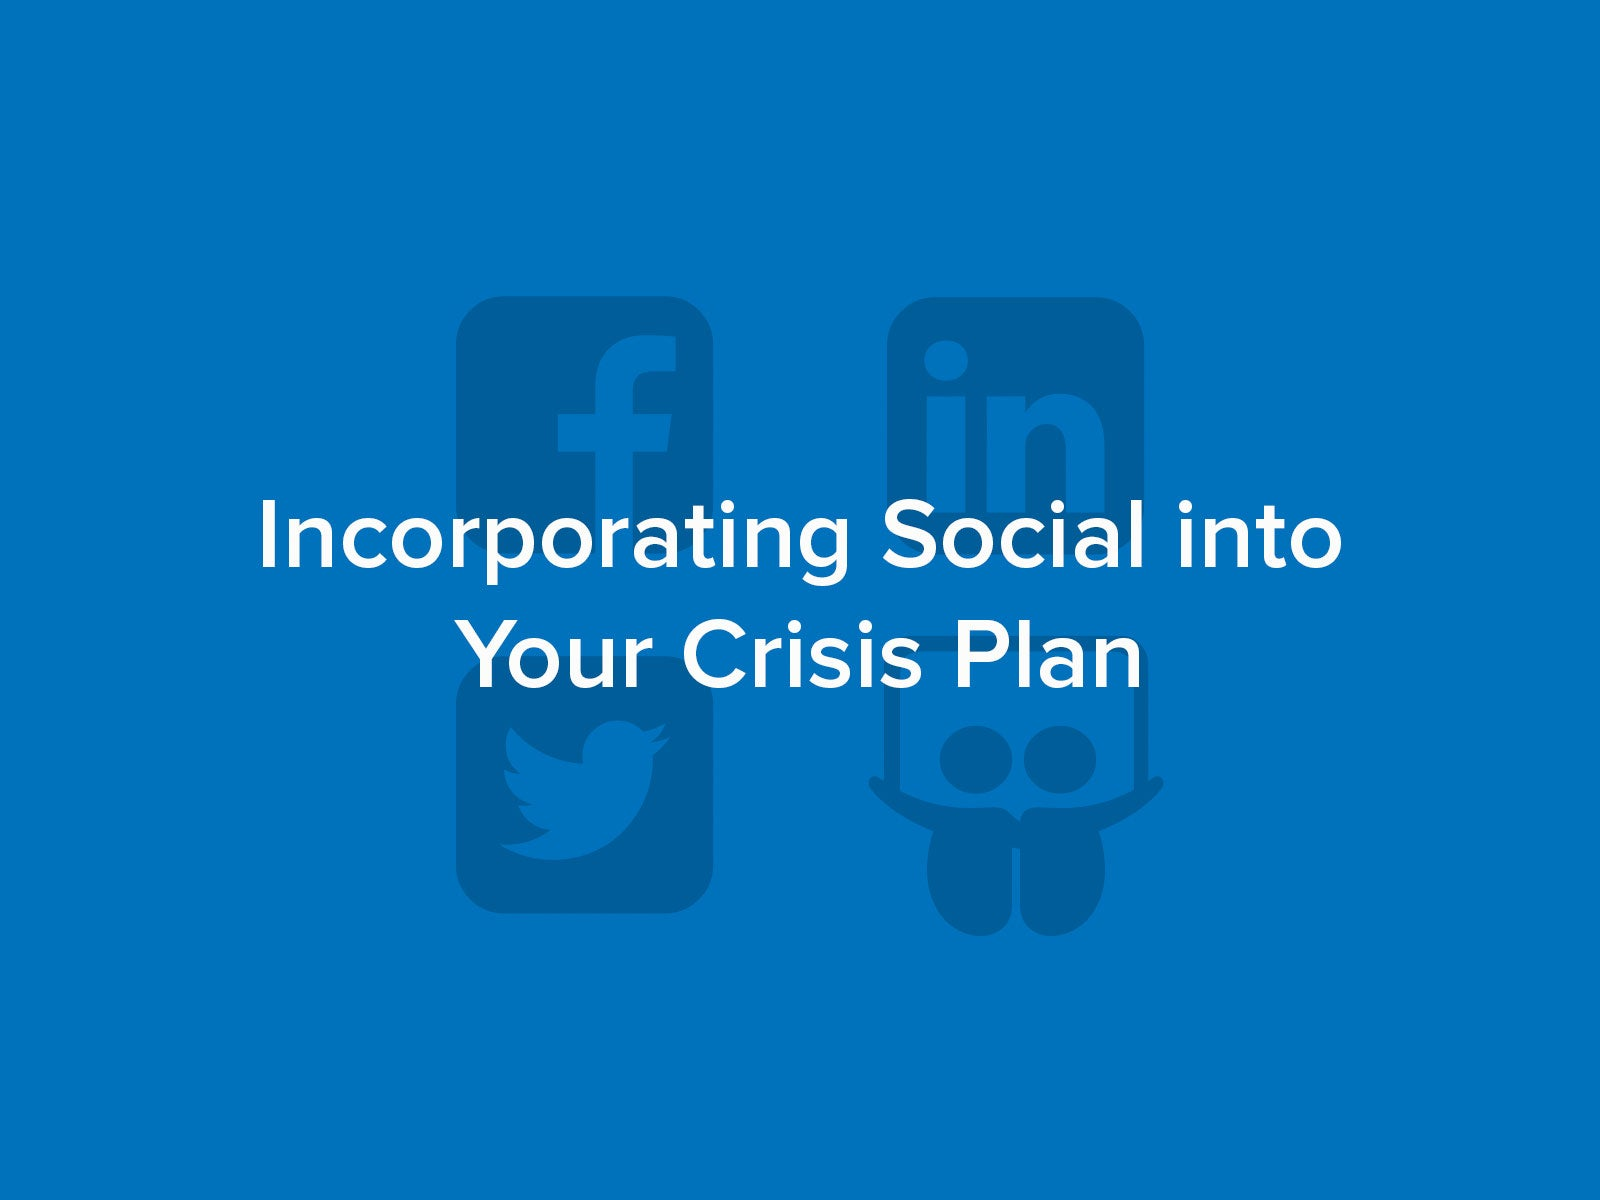 Incorporating social communications into your crisis plan